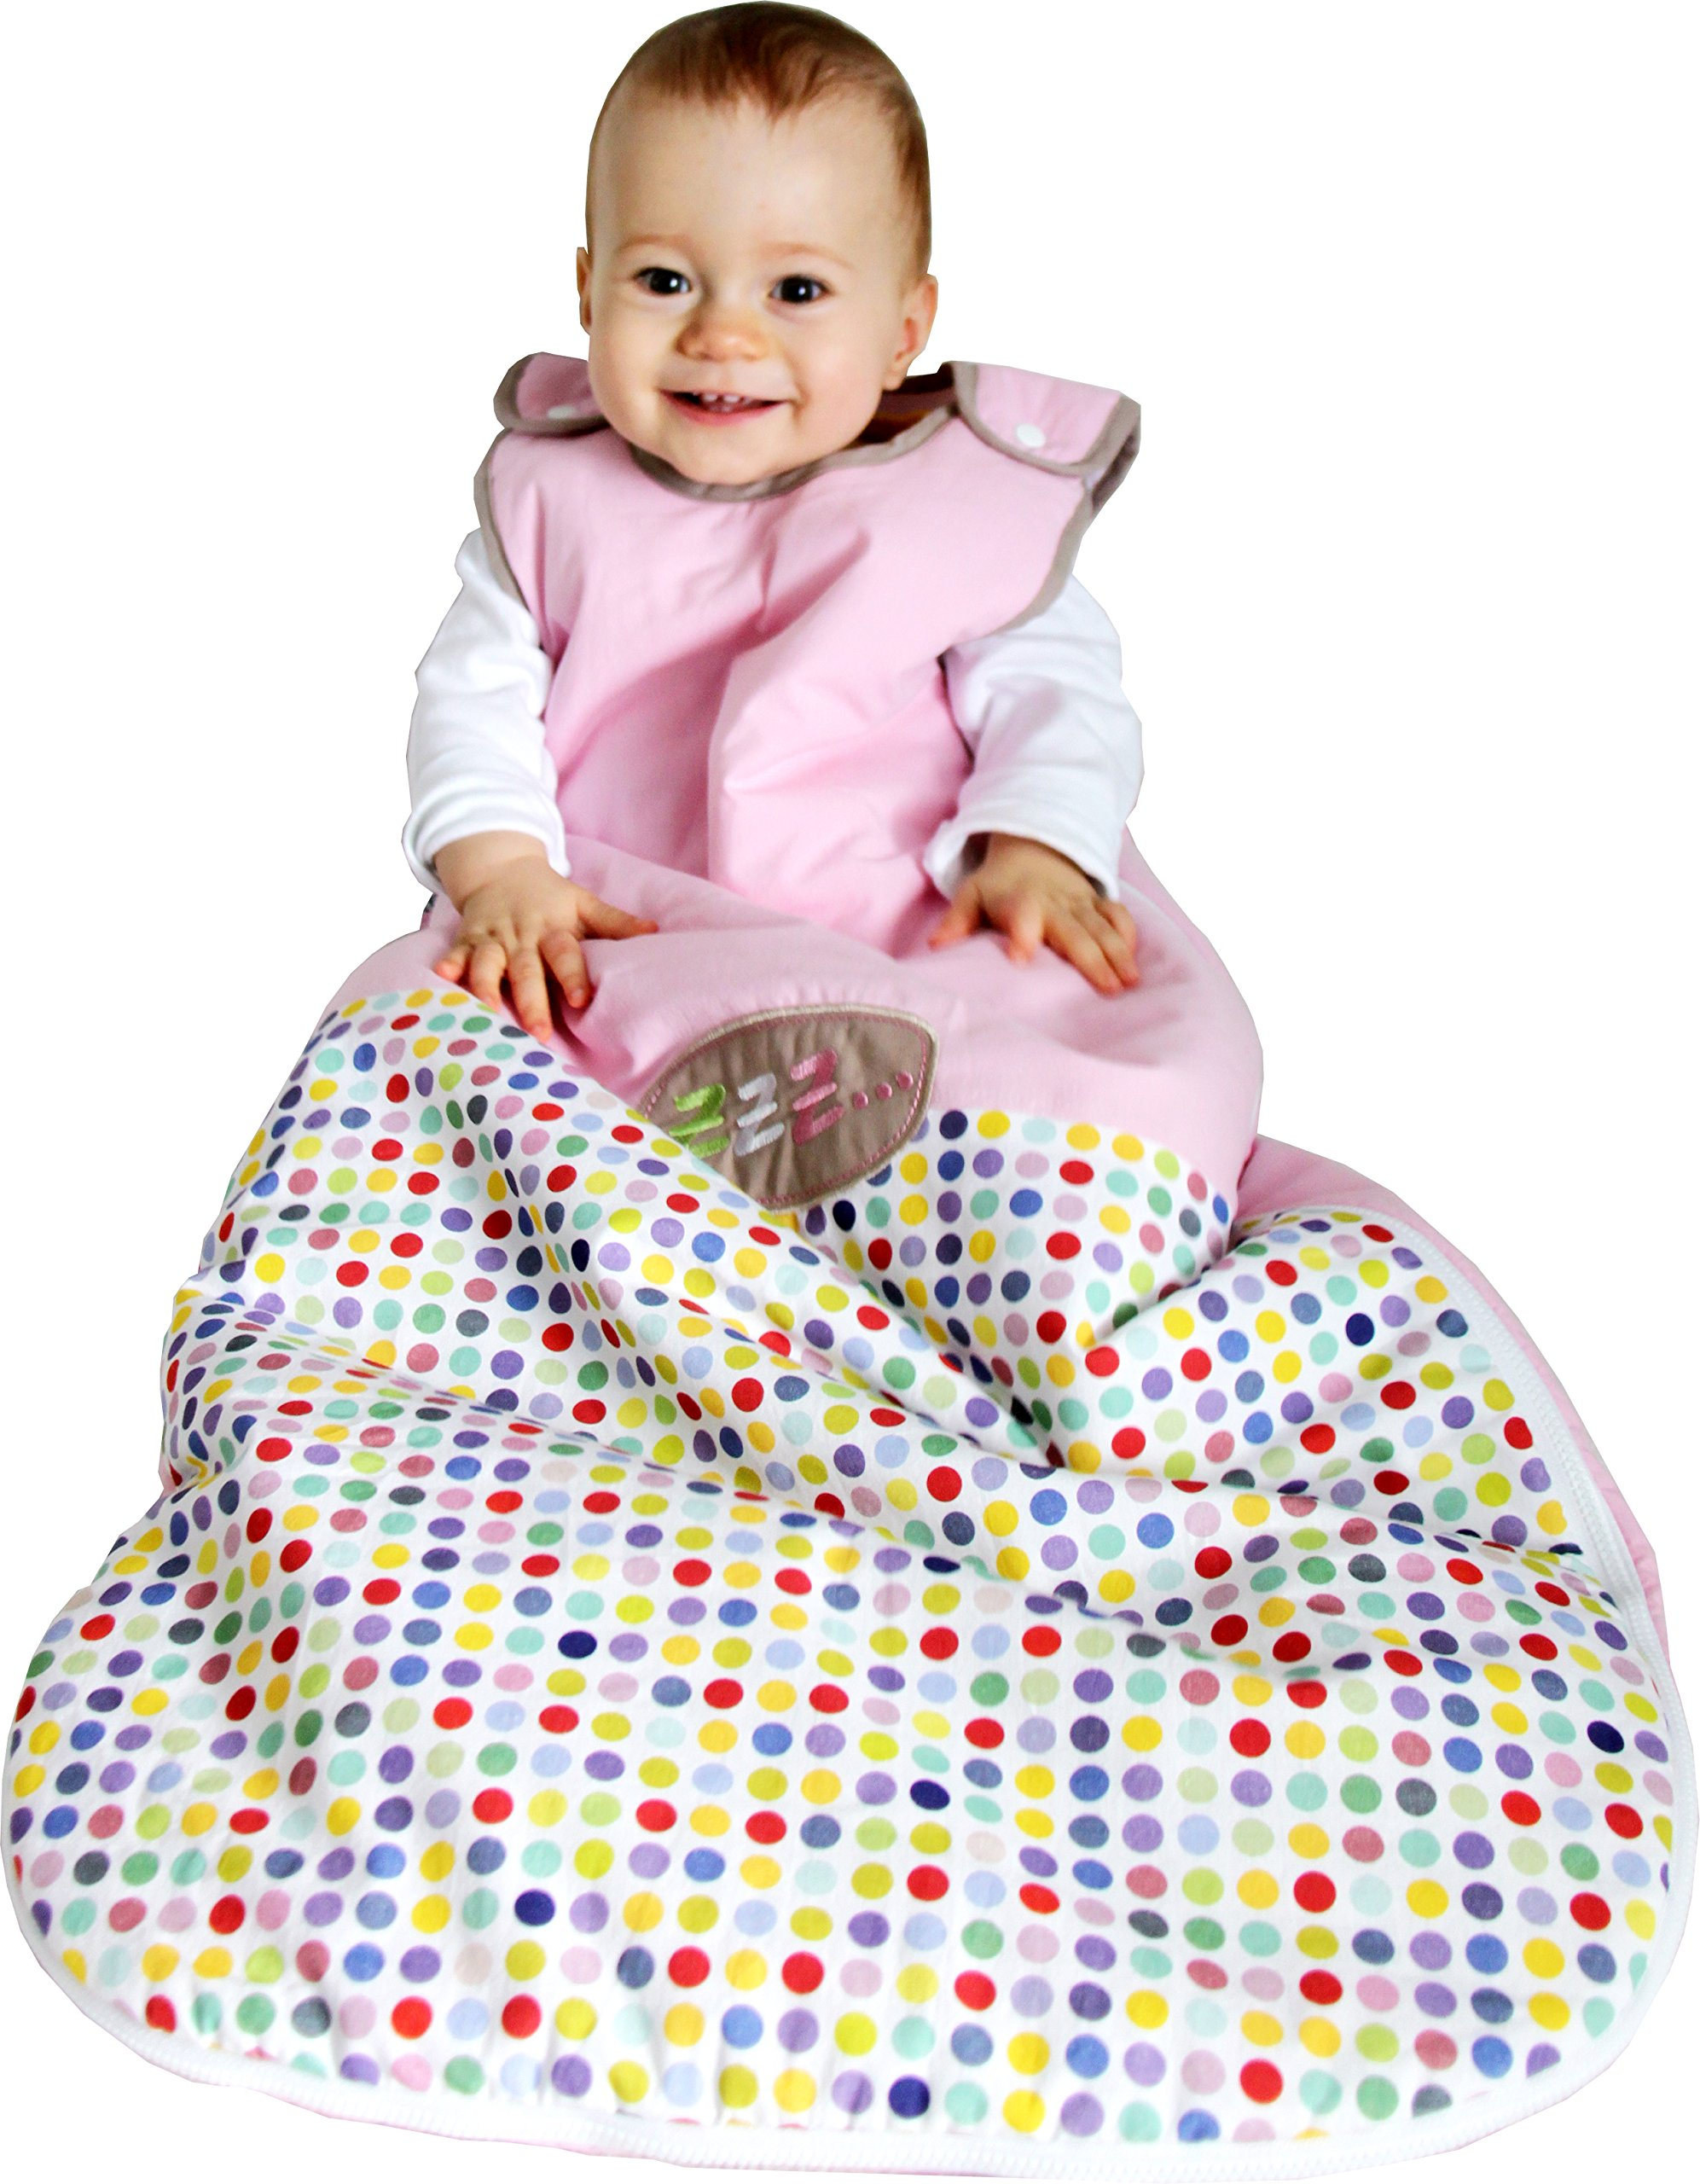 TuoMio Baby Sleeping Bag - 6-18 months - 2.5 Tog 4 seasons Sleeping Bag